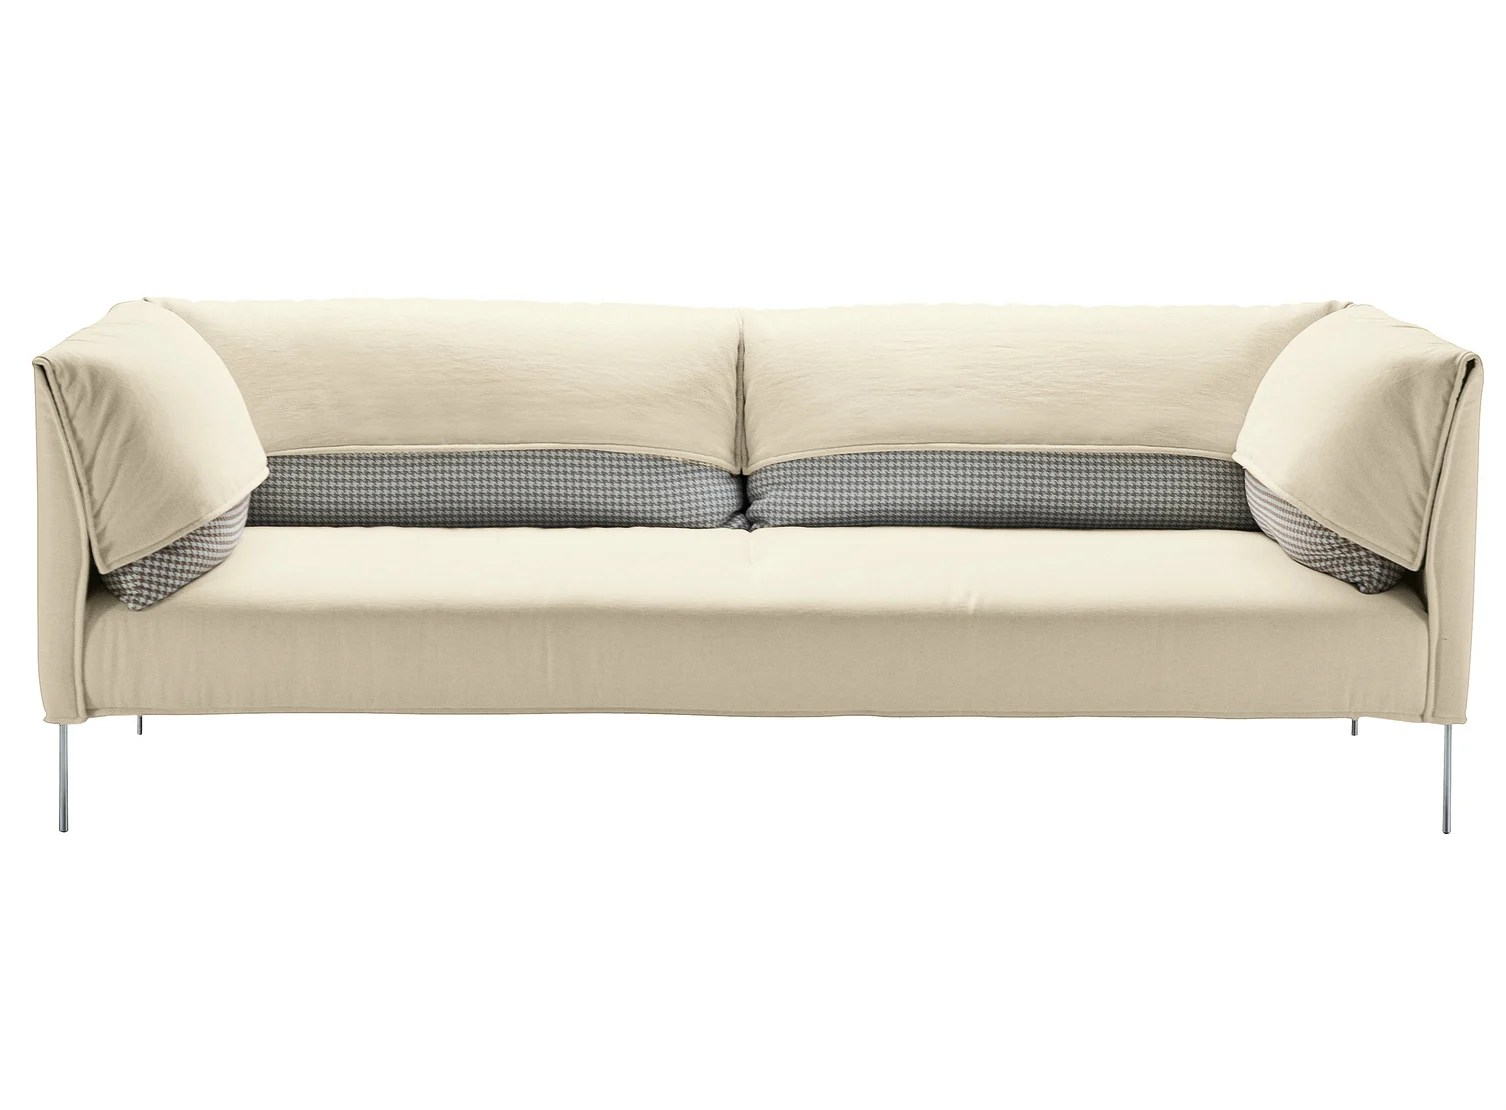 removable cover sofa for under 1000 upholstered with undercover zanotta